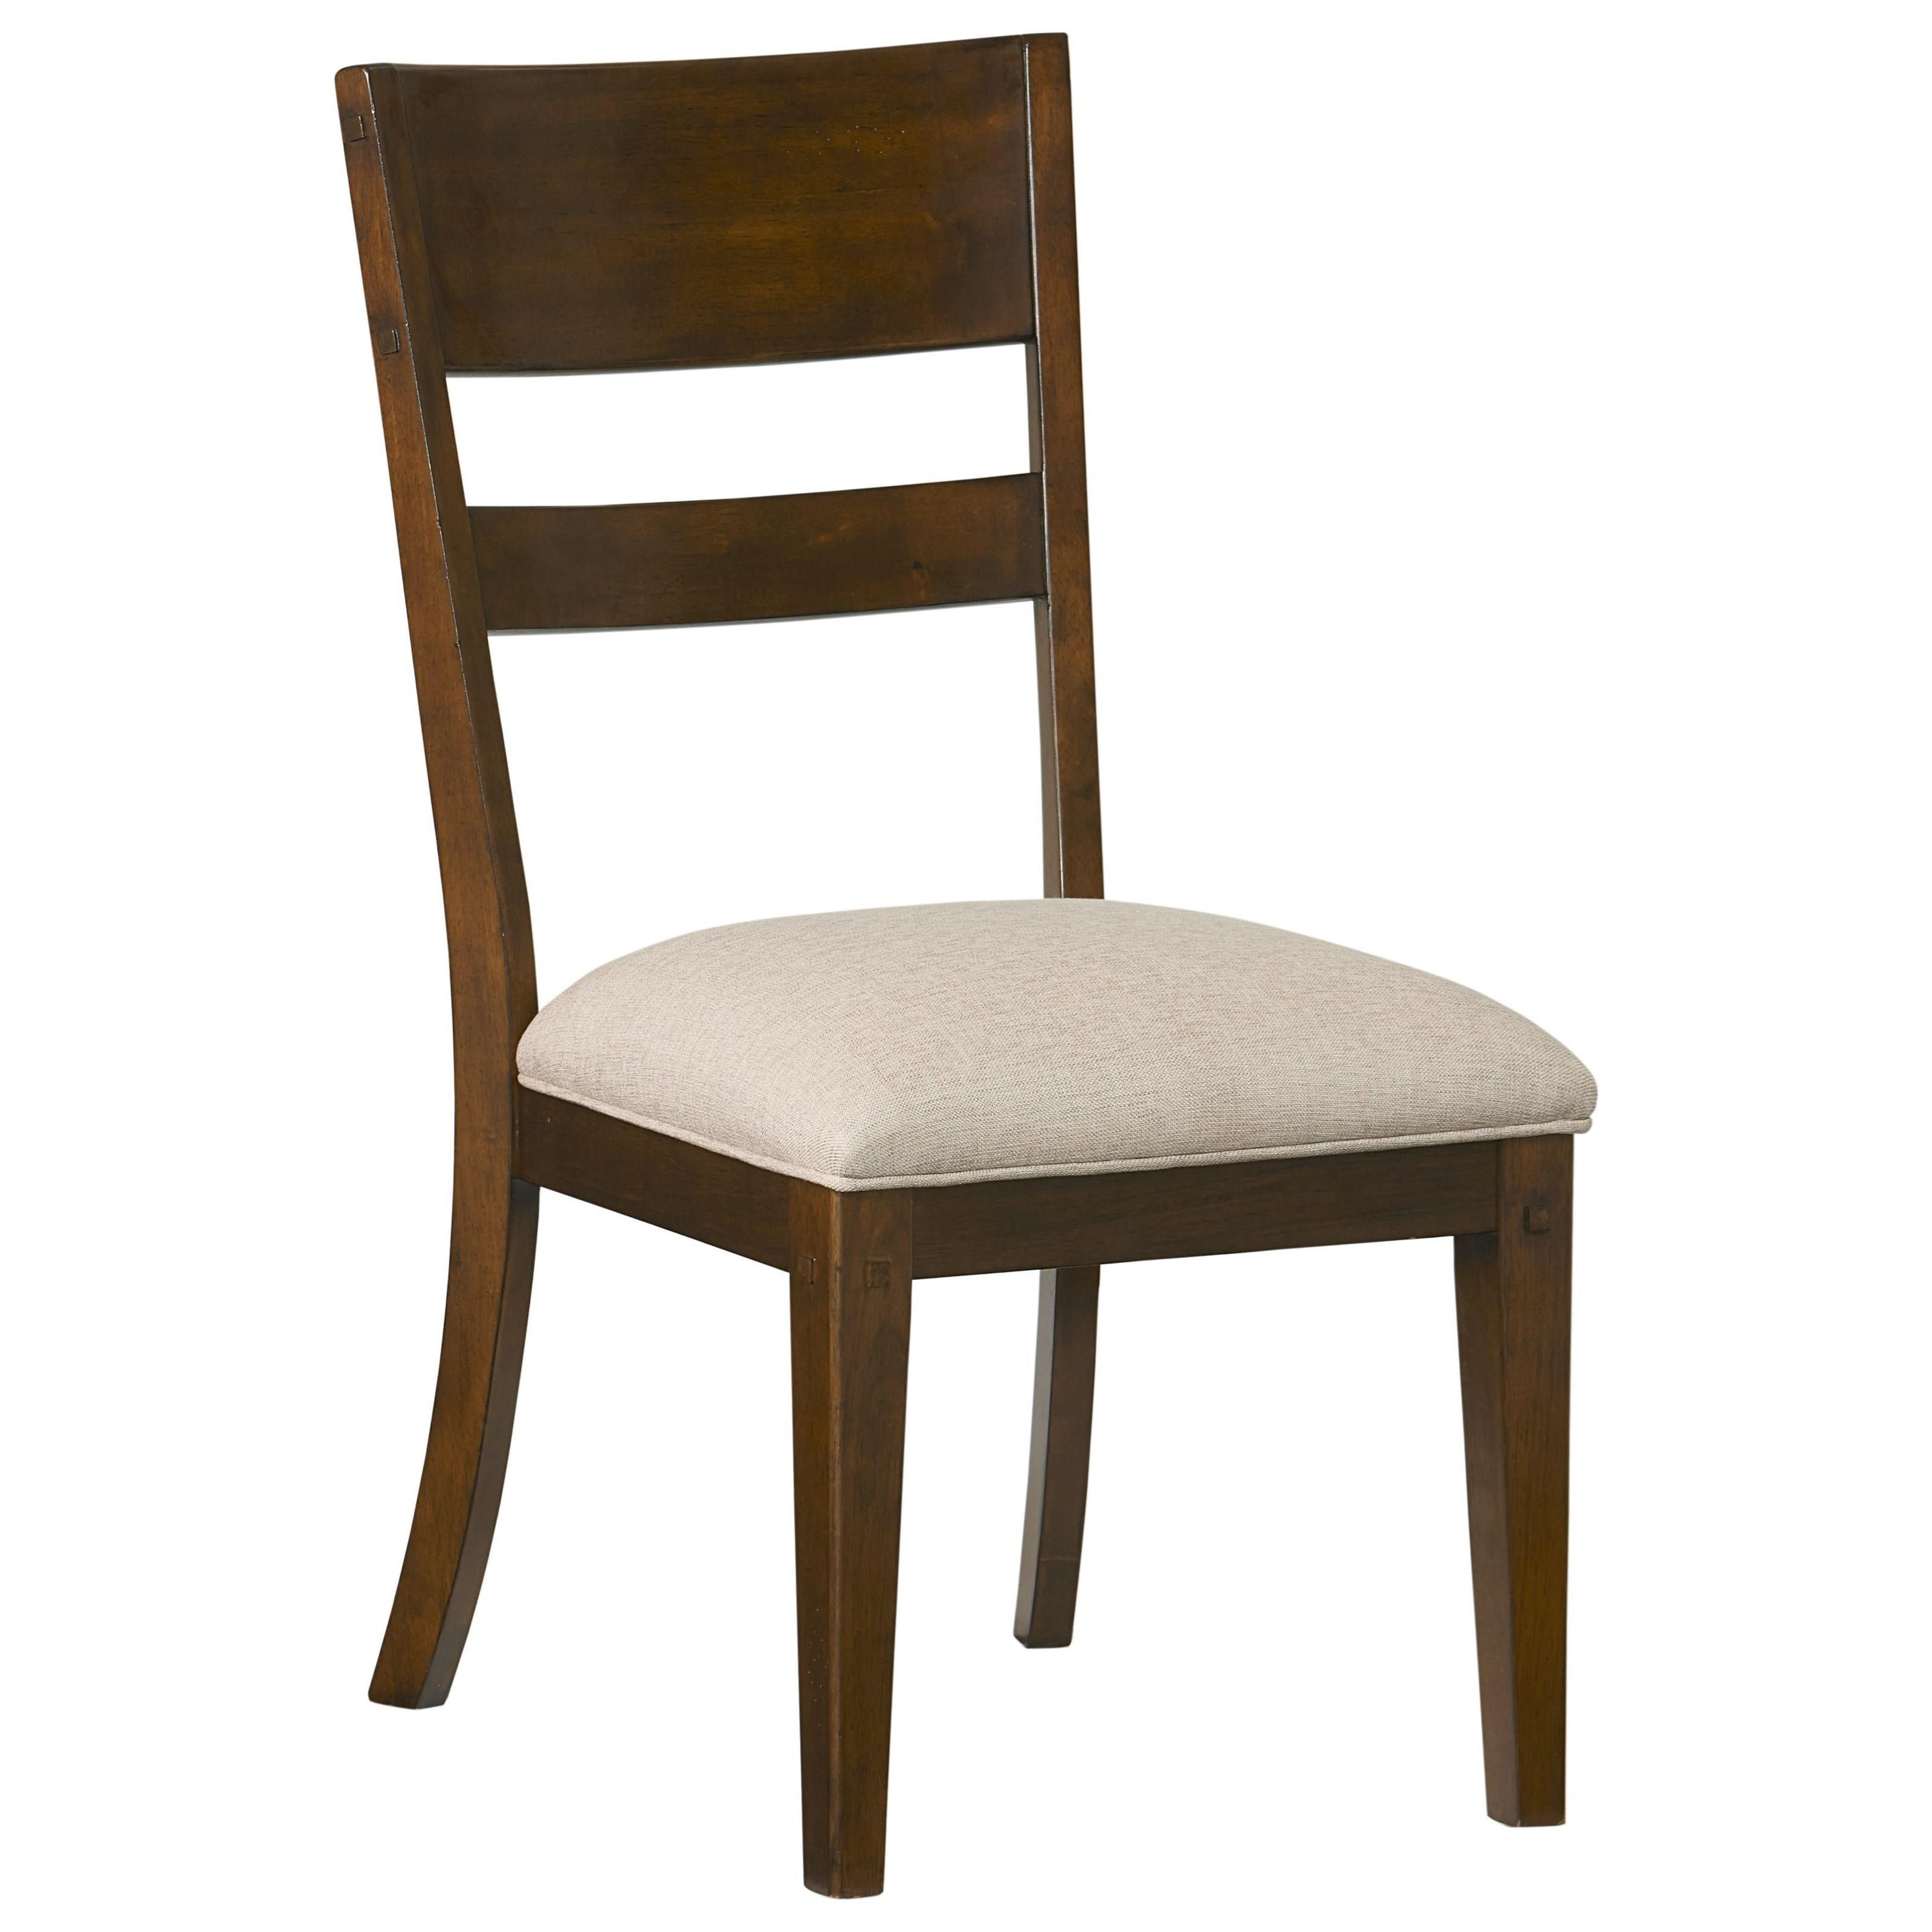 Standard Furniture Cameron Side Chair - Item Number: 14304